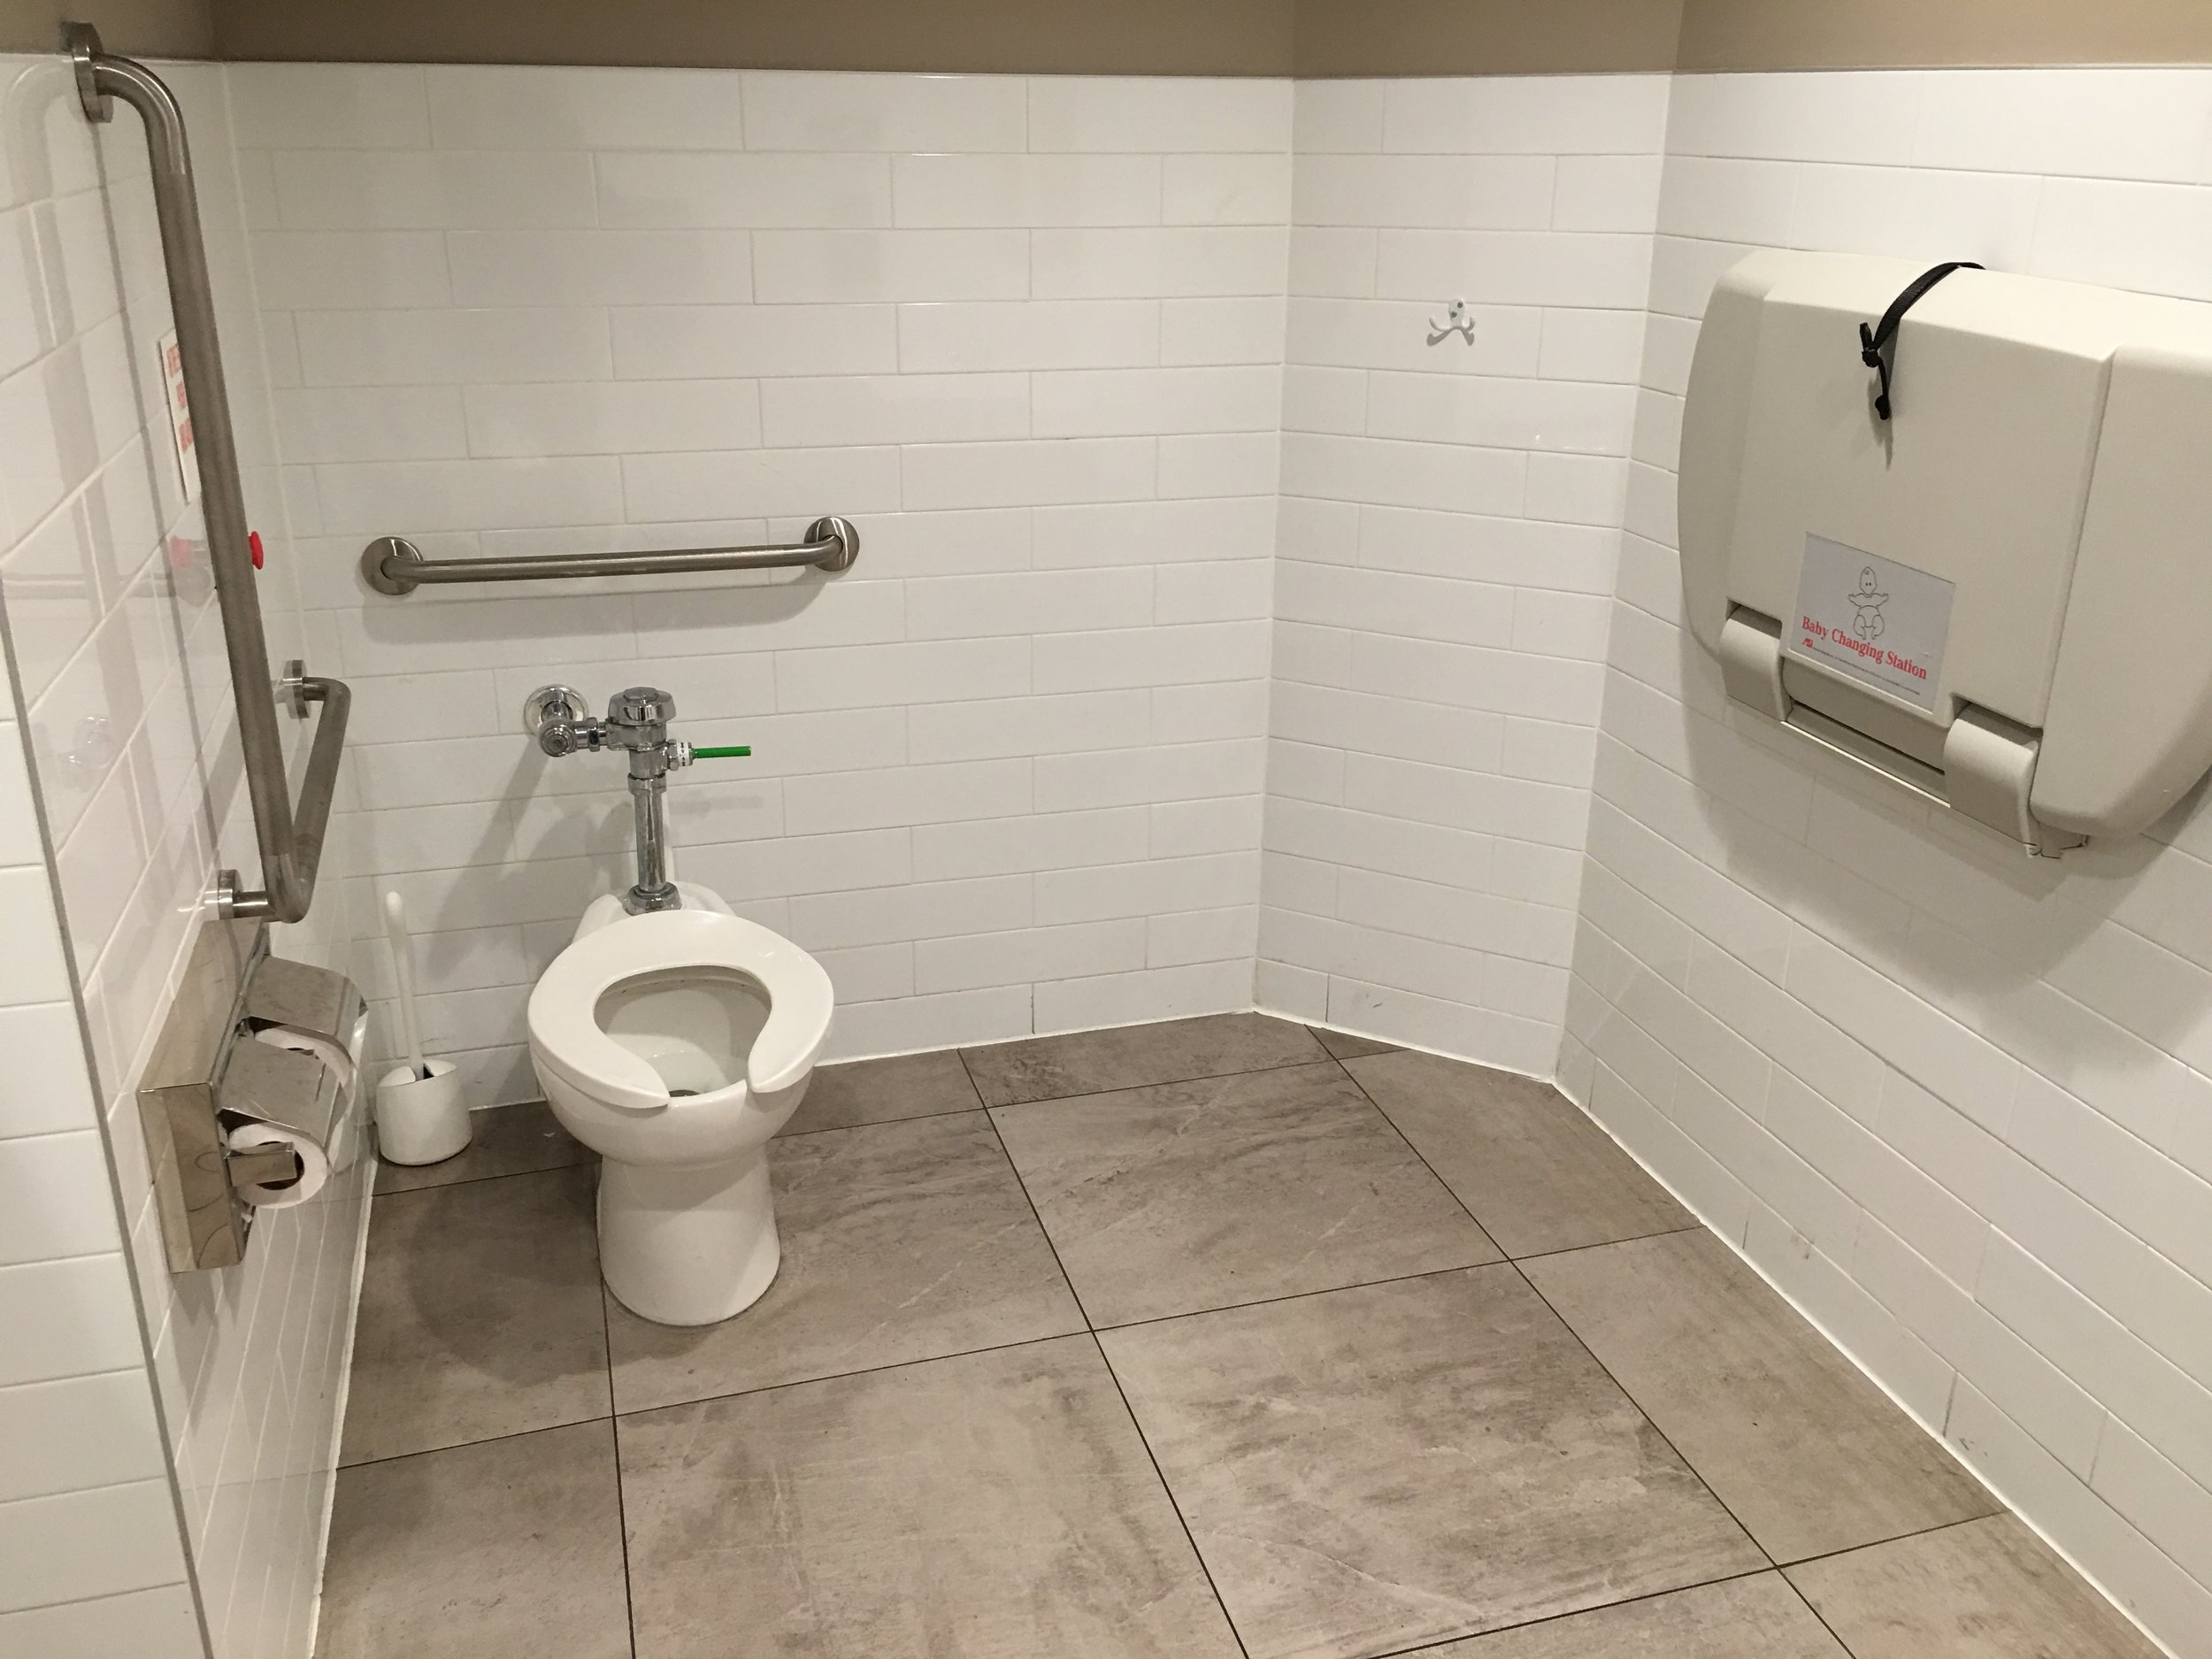 Picture of grab bars surrounding toilet in the accessible washroom